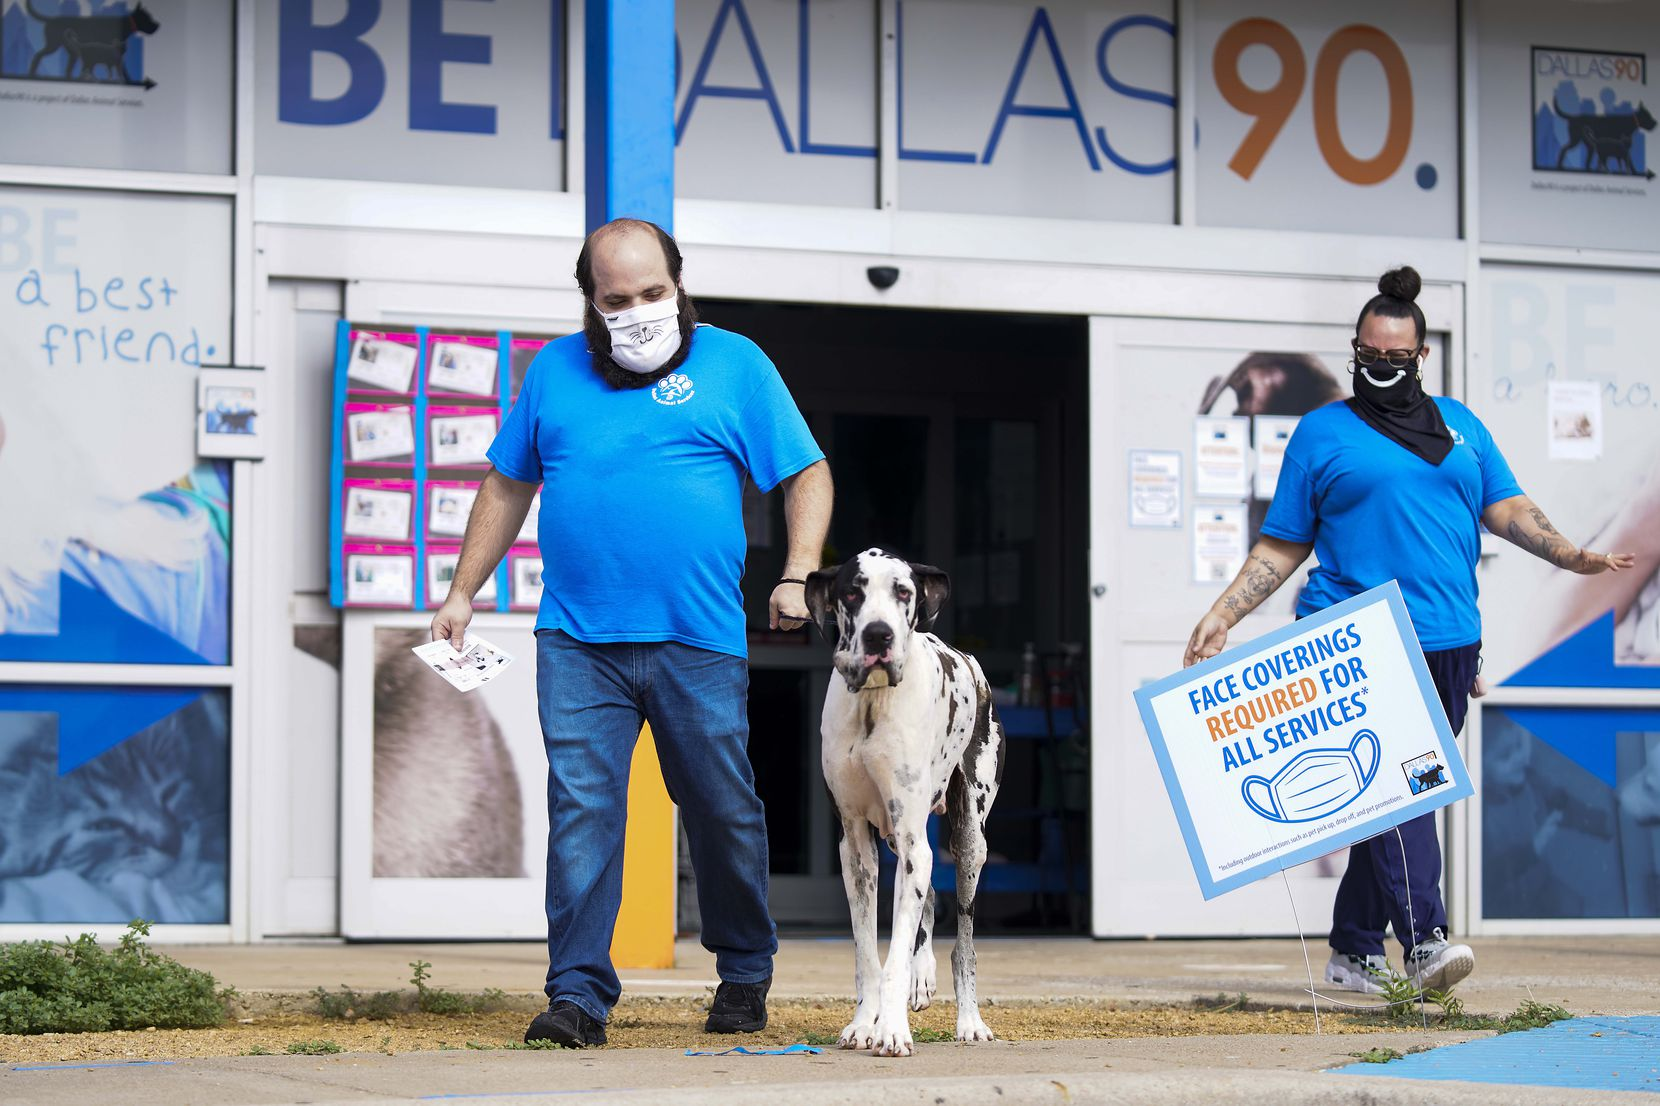 Animal keeper John Silvestri and animal care technician Brigitte Beddow led a Great Dane to the parking lot for curbside pickup at Dallas Animal Services last summer. Once the pandemic began, DAS converted to an online adoption process. Recently it's begun hosting a few adoption events outdoors.